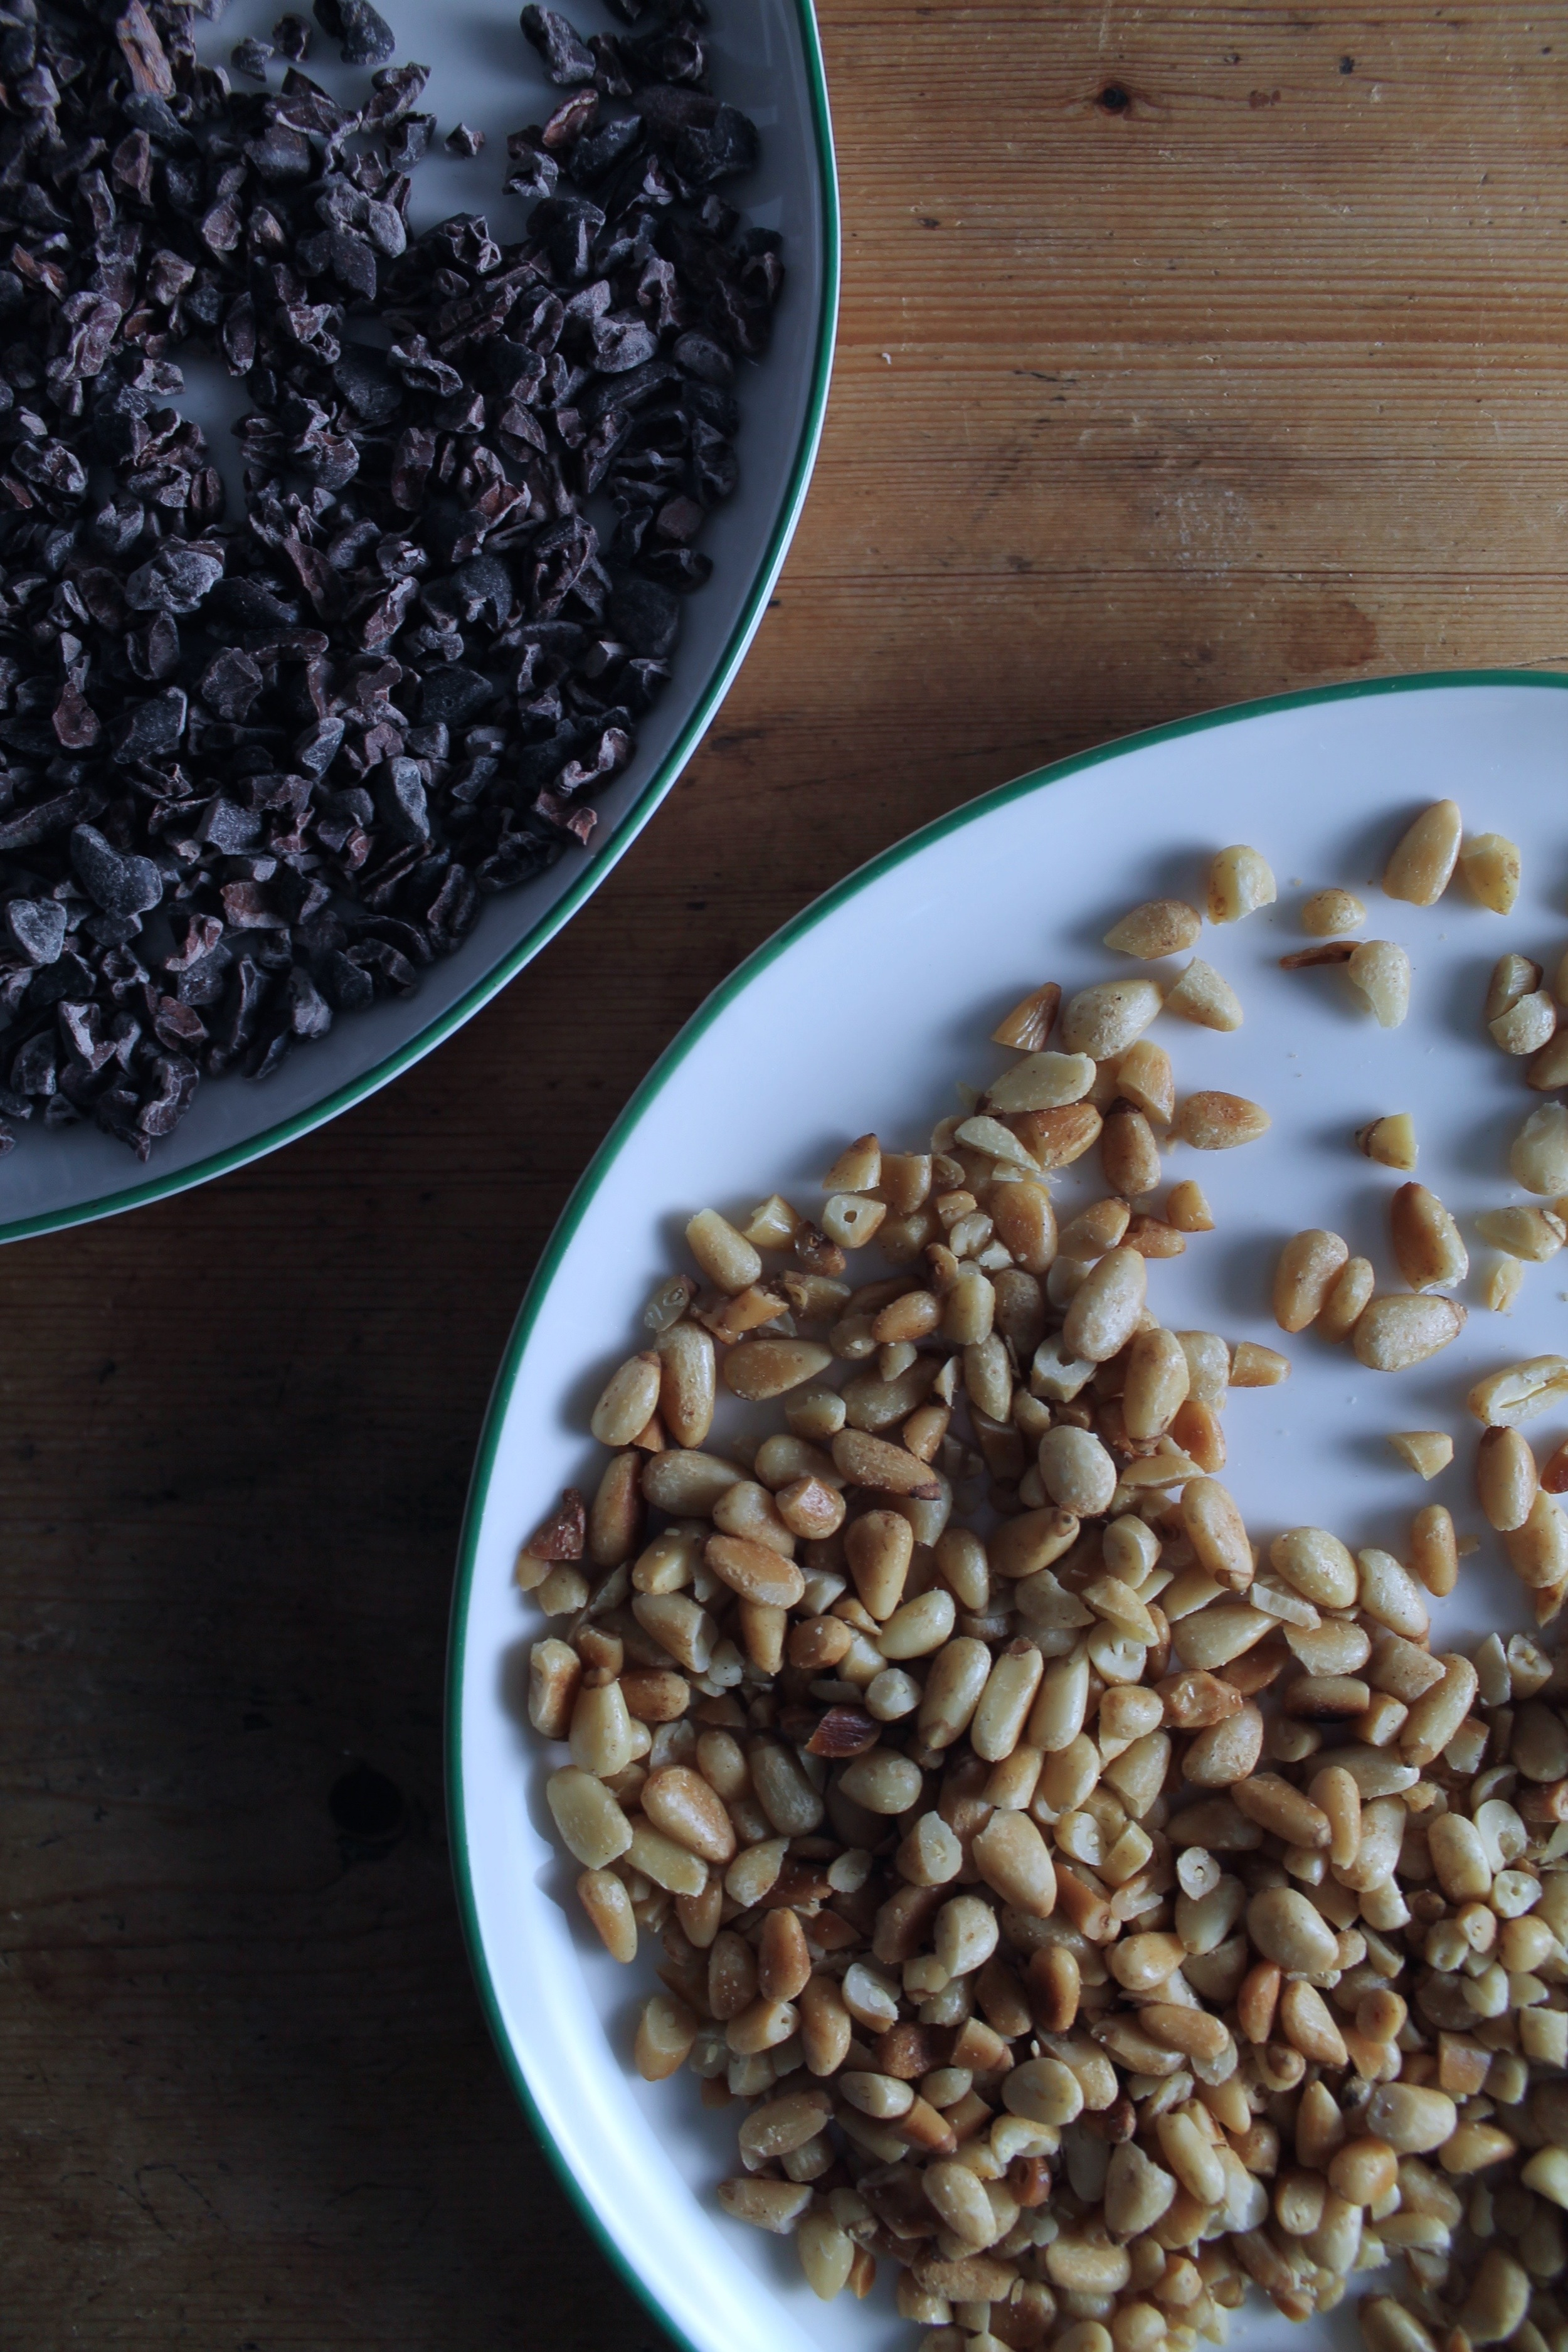 Cocoa Nibs + Pine Nuts | www.hungryinlove.com